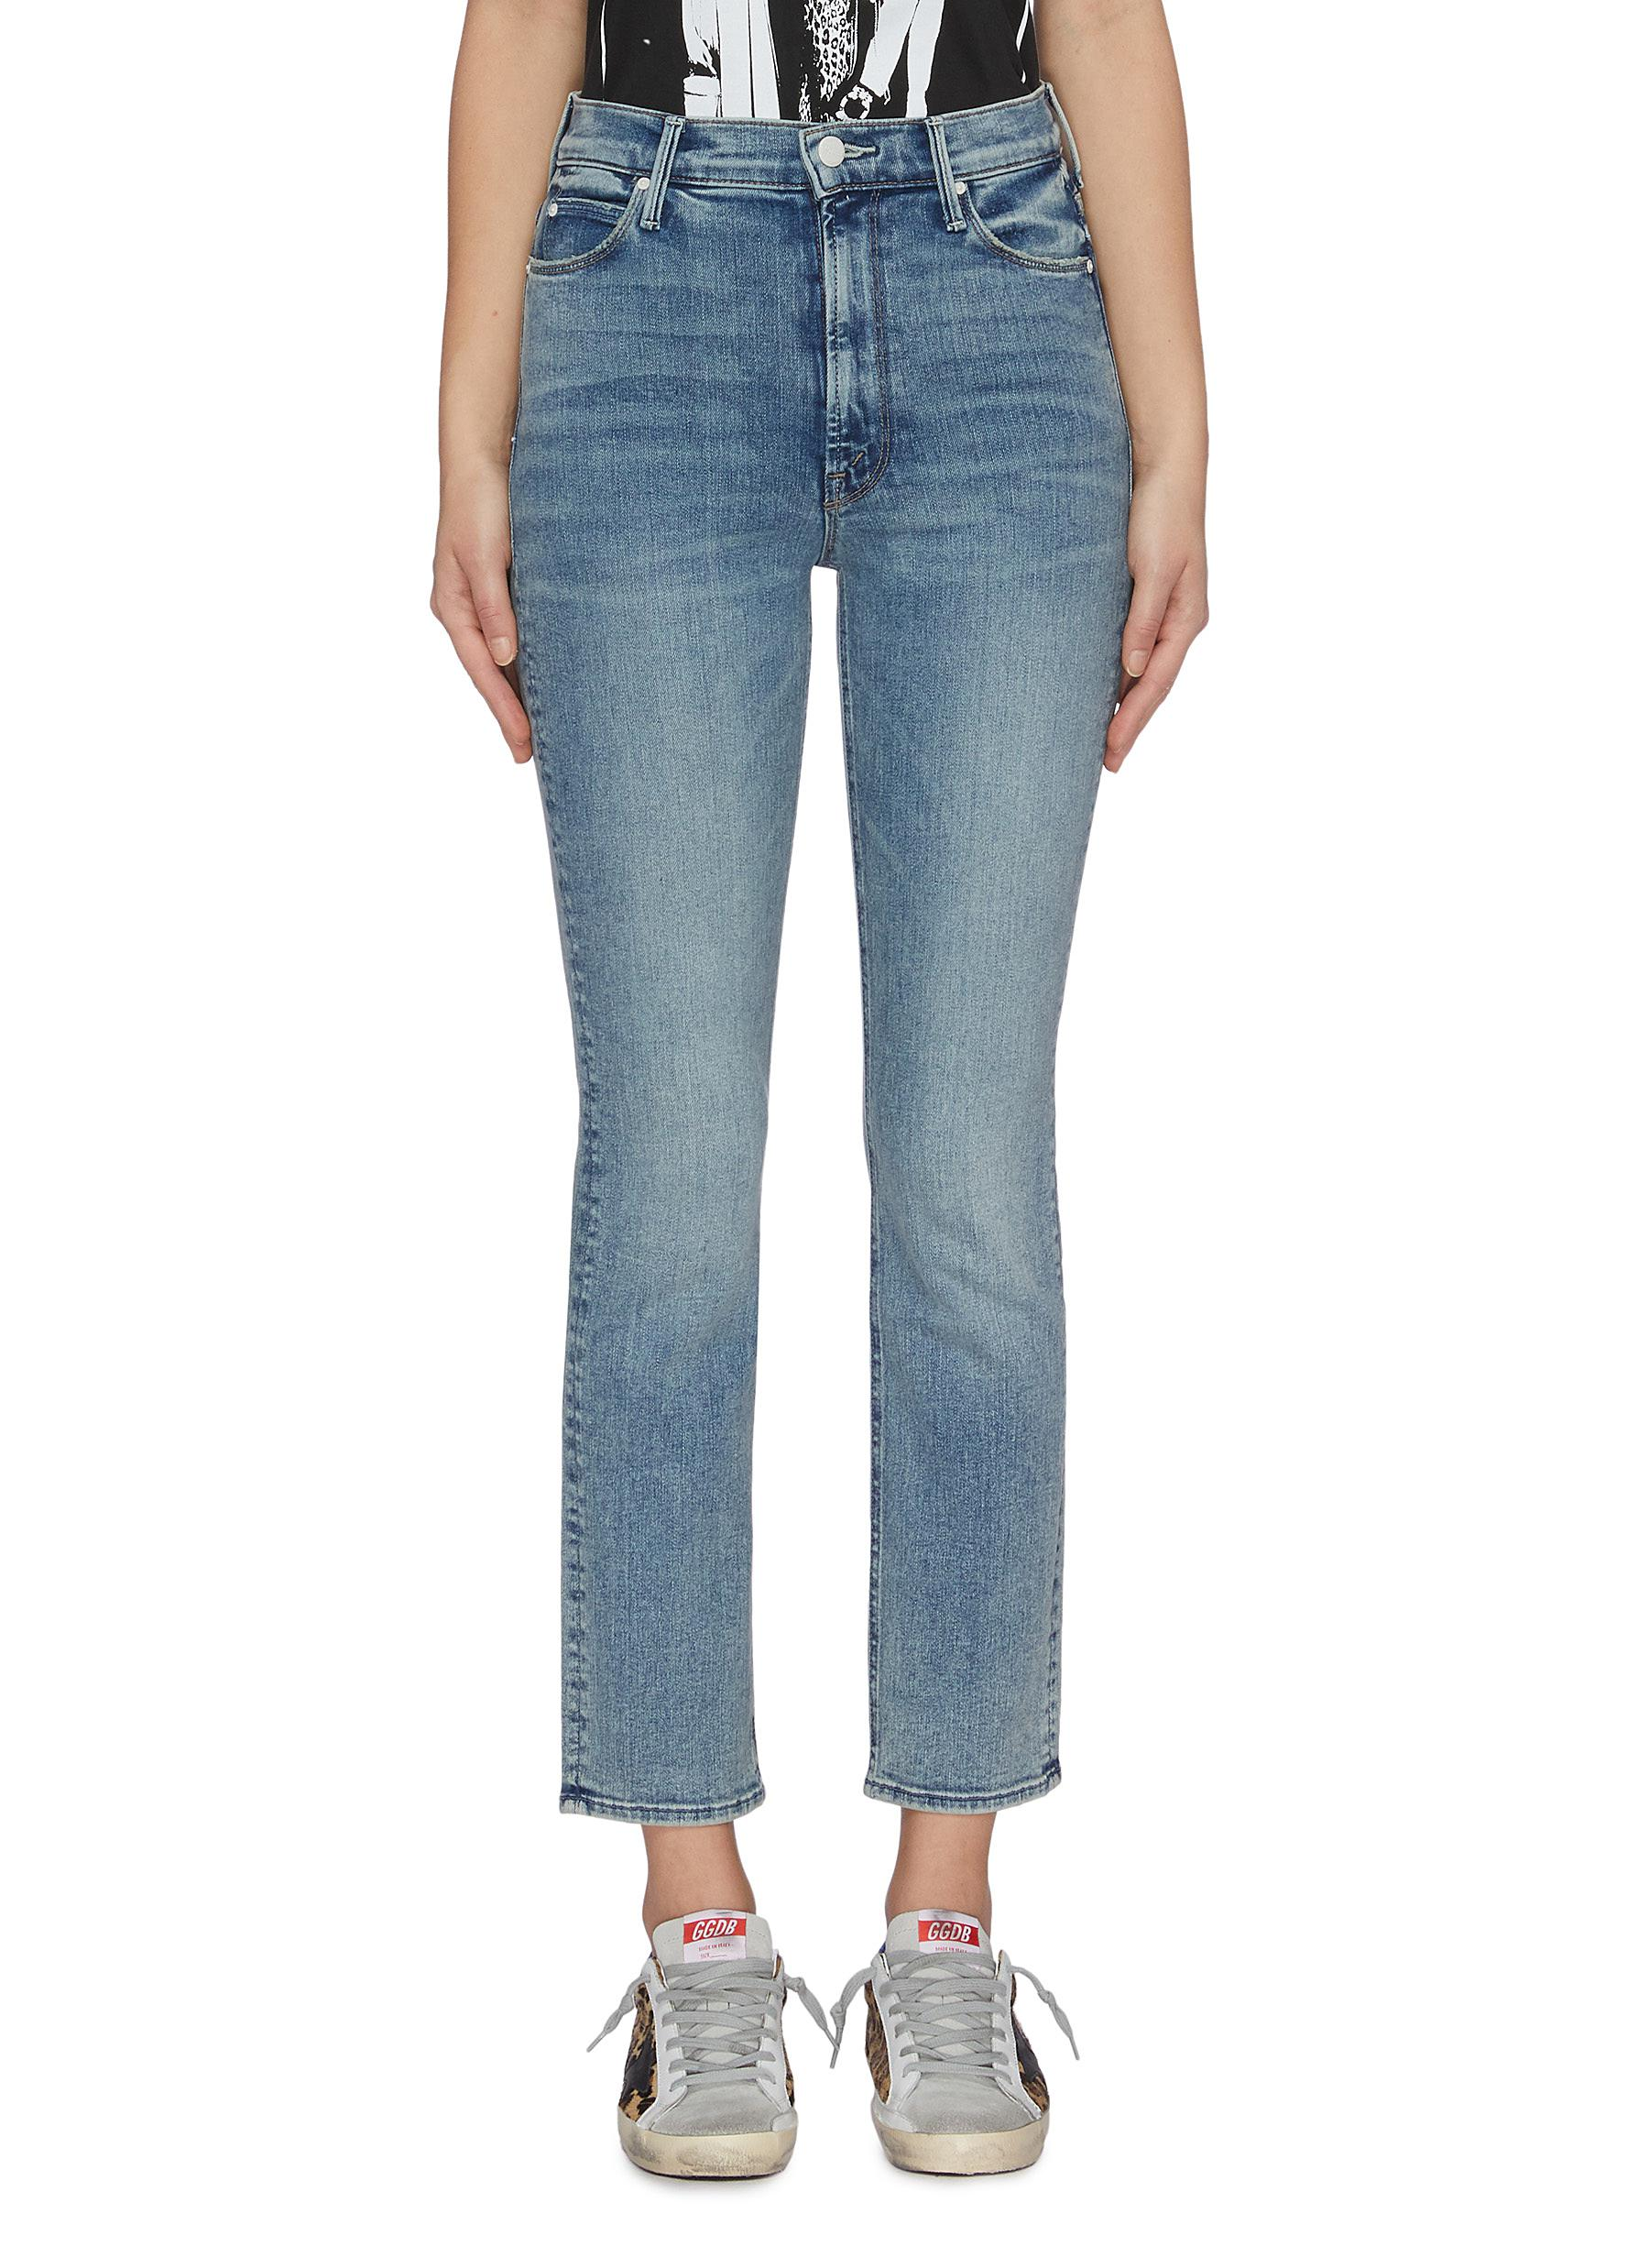 The Dazzler cropped skinny jeans by Mother